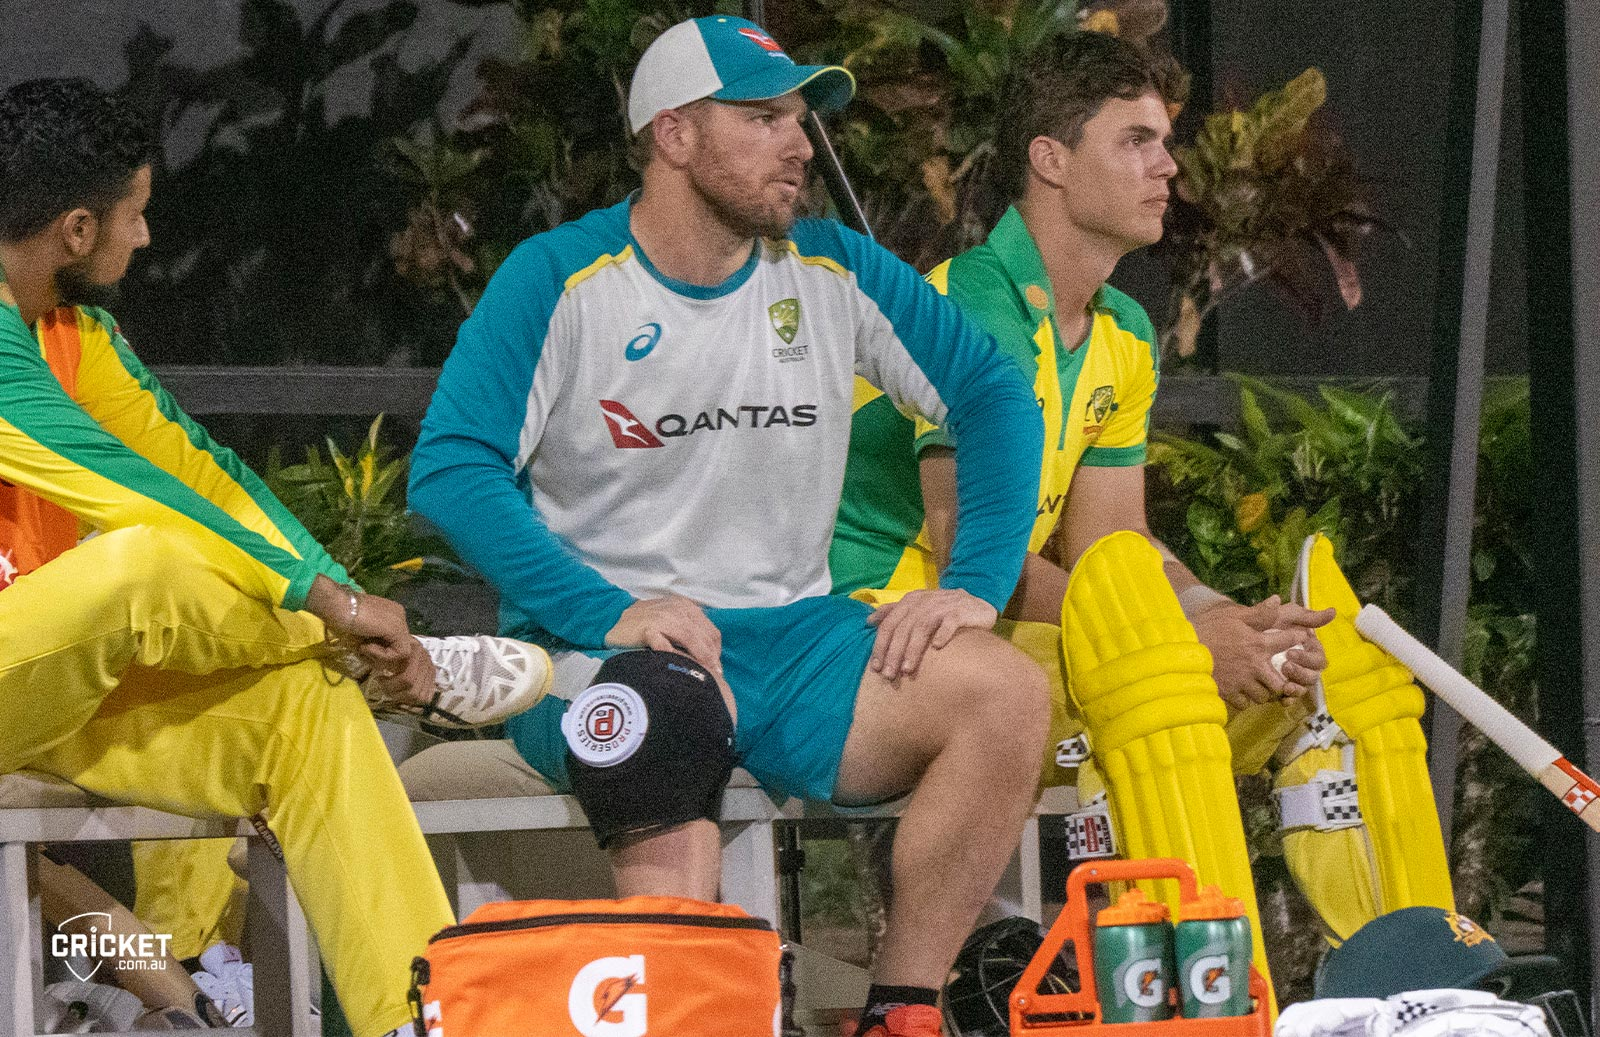 Finch ices his knee in St Lucia // cricket.com.au